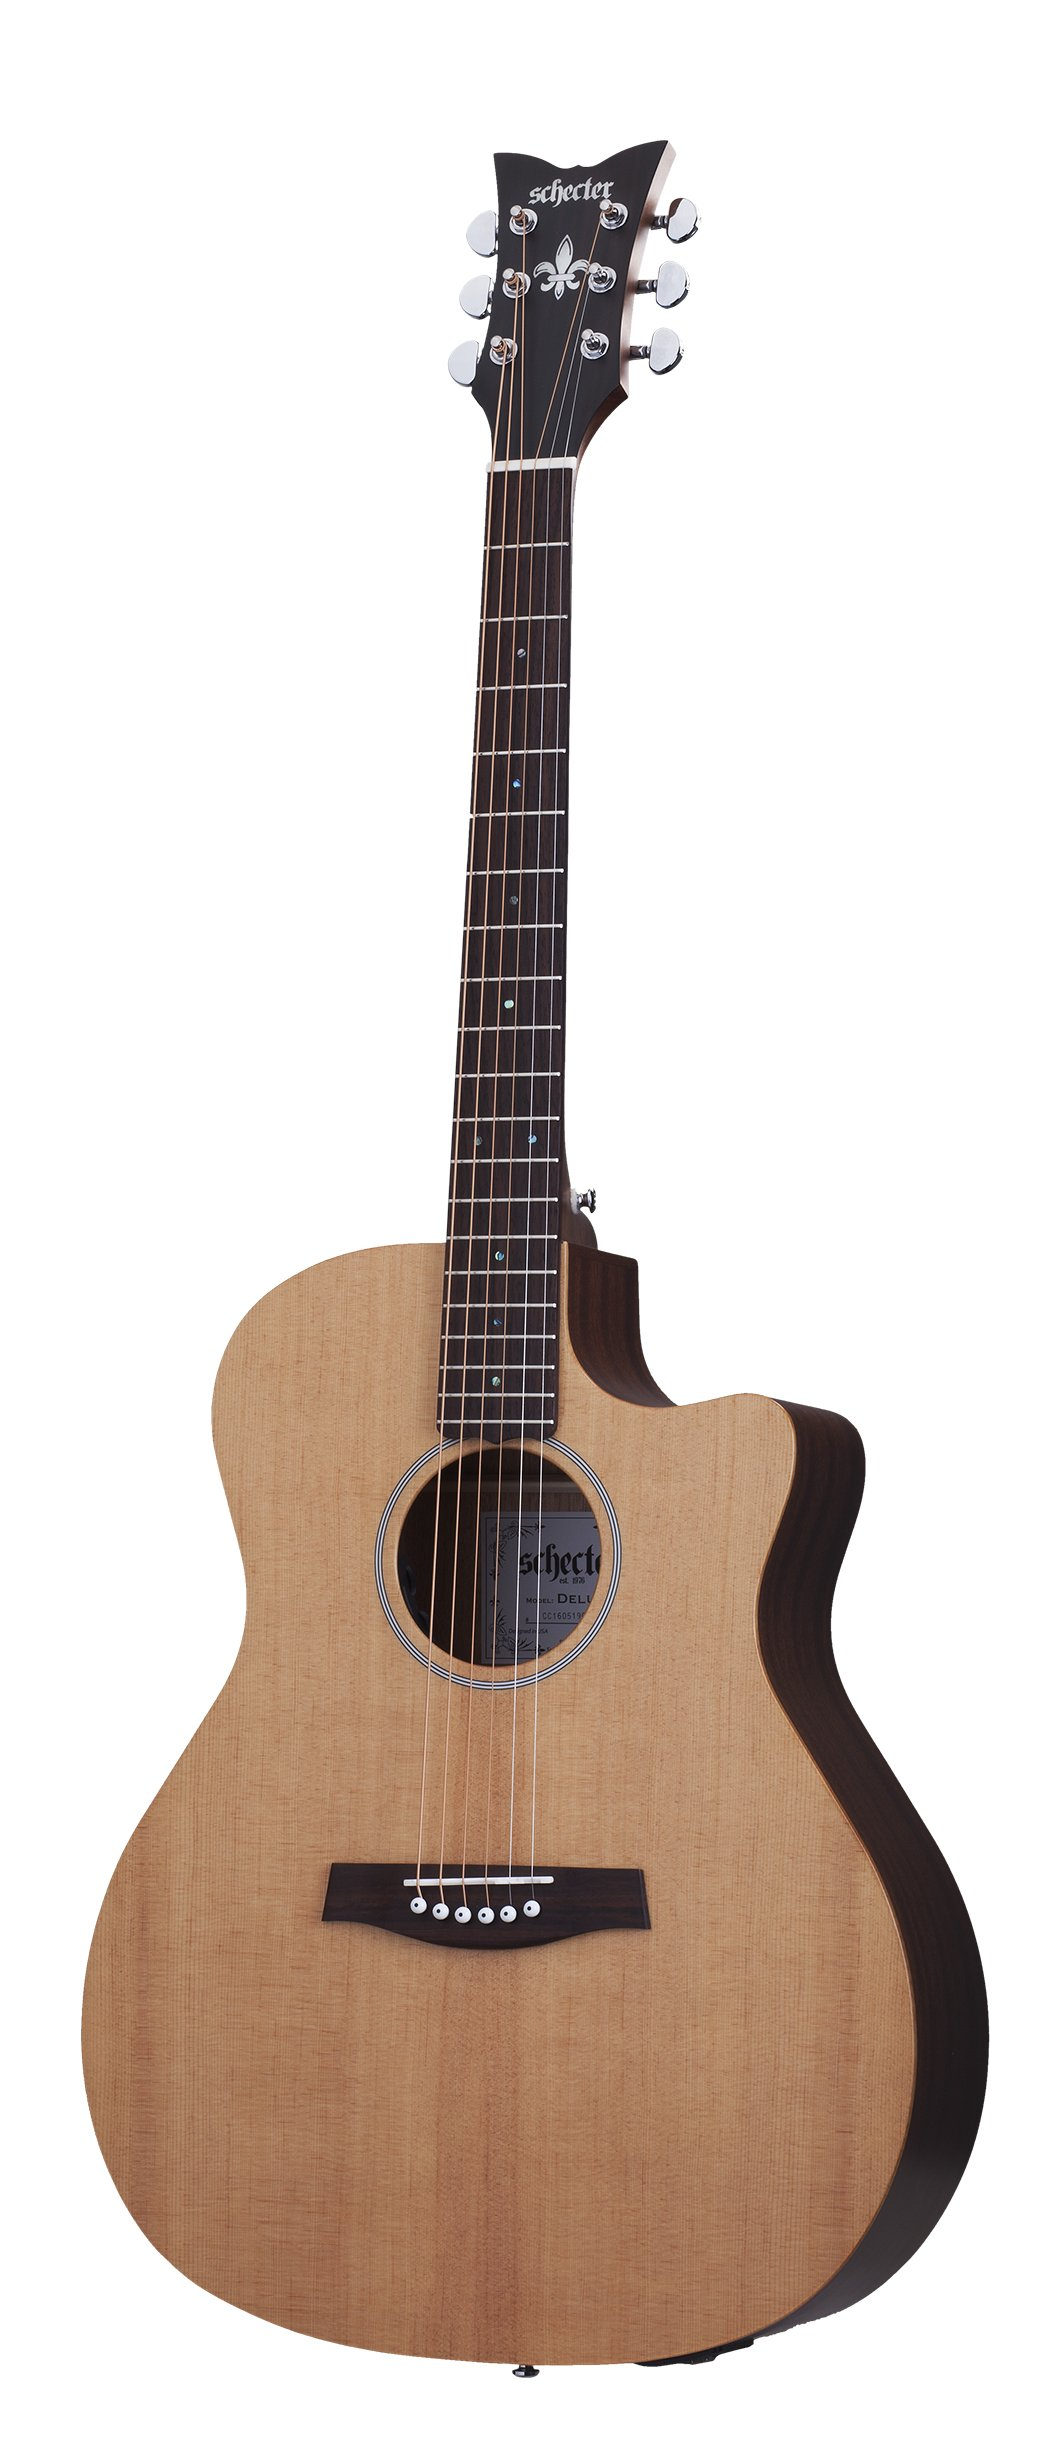 Schecter 3715 Acoustic Guitar, Natural Satin by Schecter